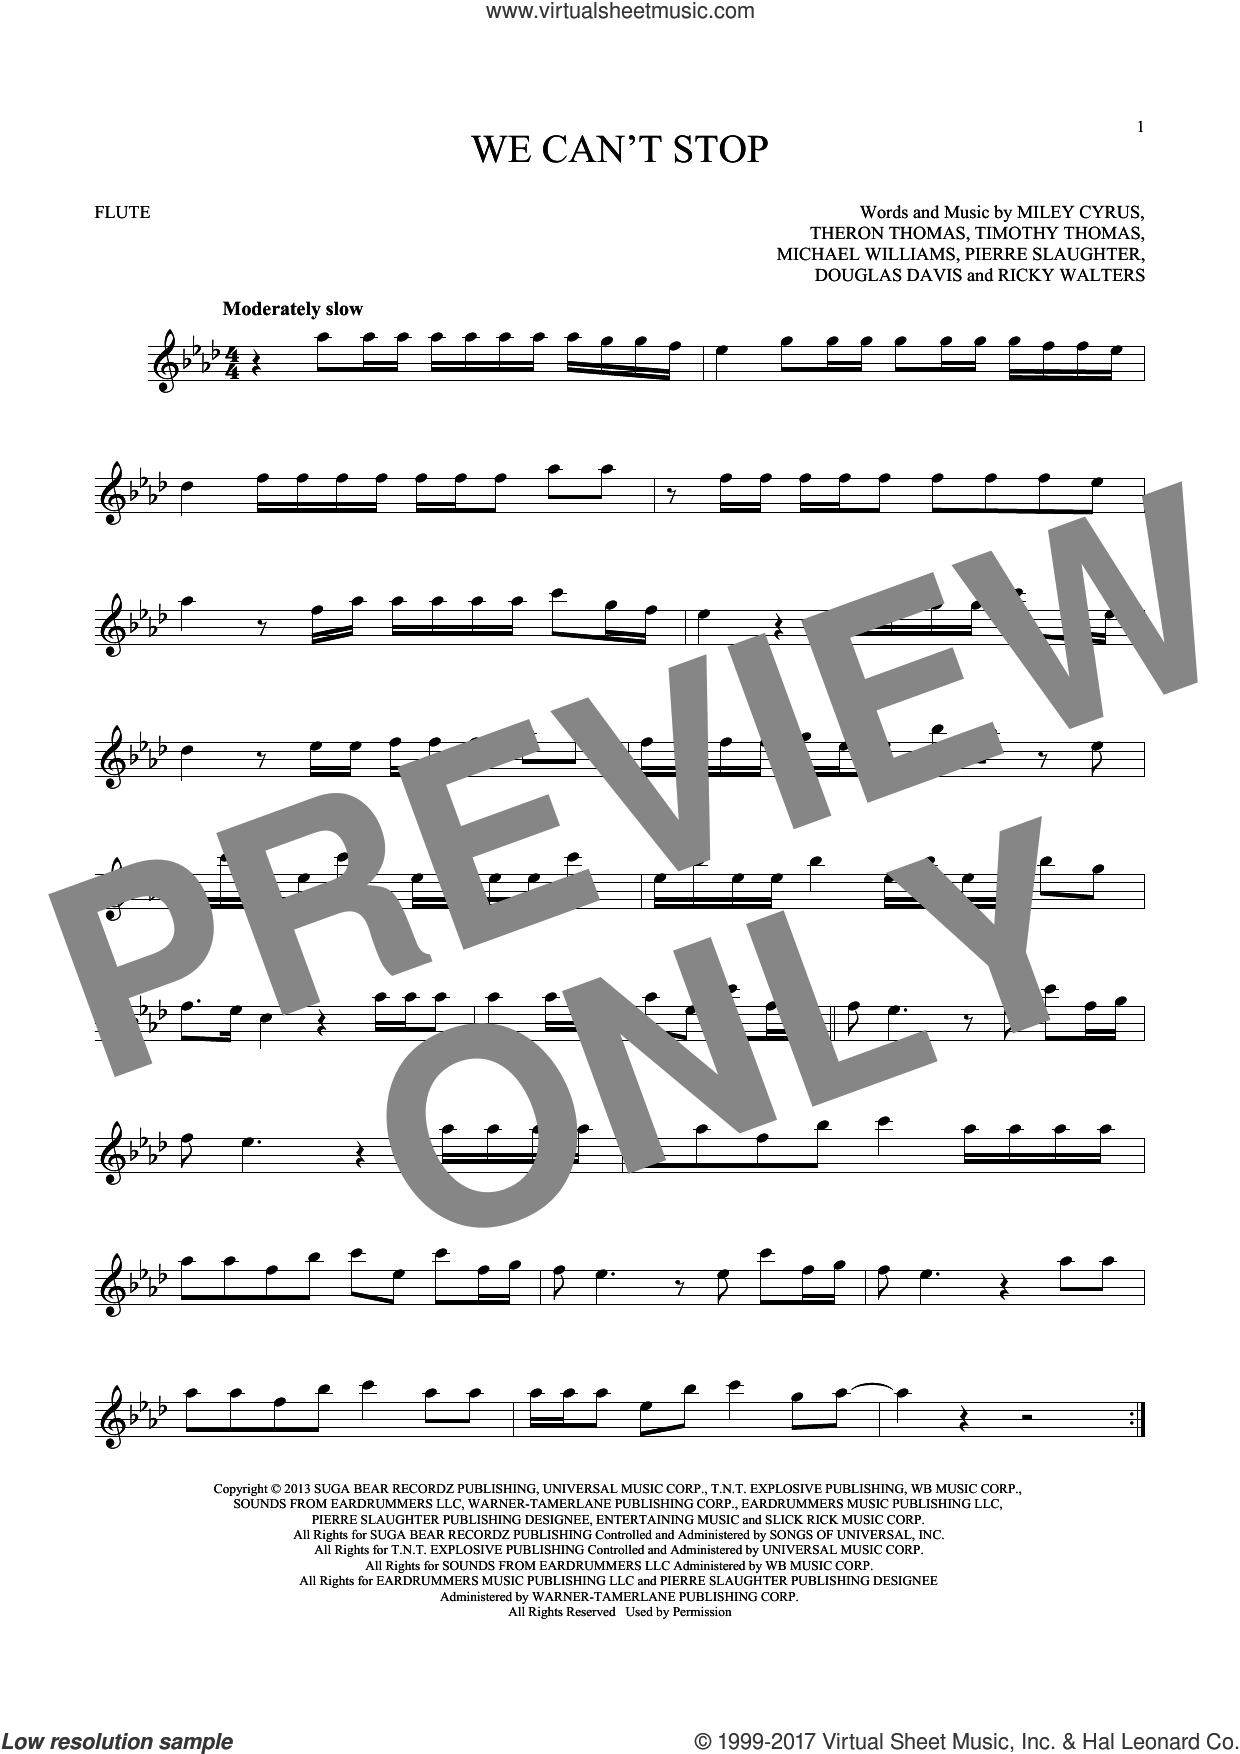 We Can't Stop sheet music for flute solo by Miley Cyrus, Douglas Davis, Michael Williams, Pierre Slaughter, Ricky Walters, Theron Thomas and Timmy Thomas, intermediate skill level